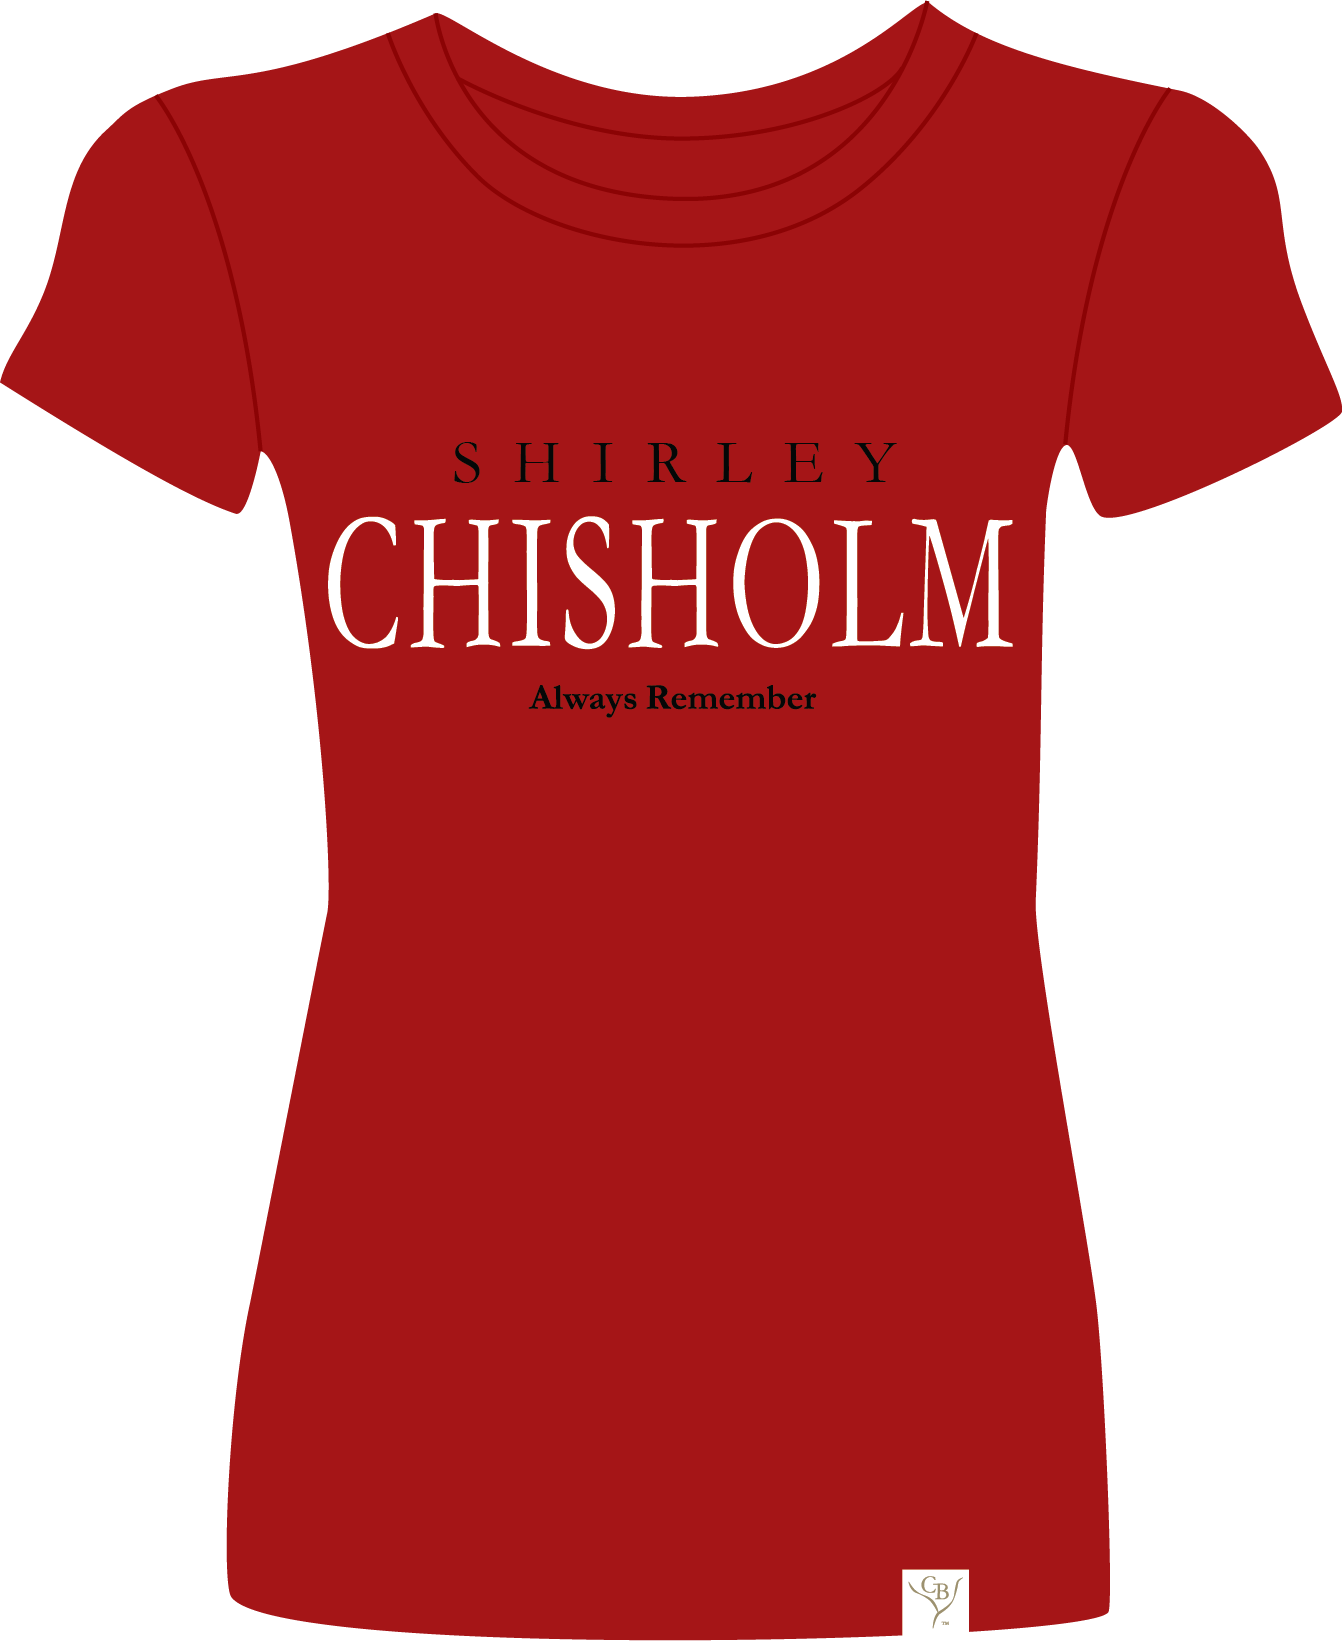 The Chisholm 9